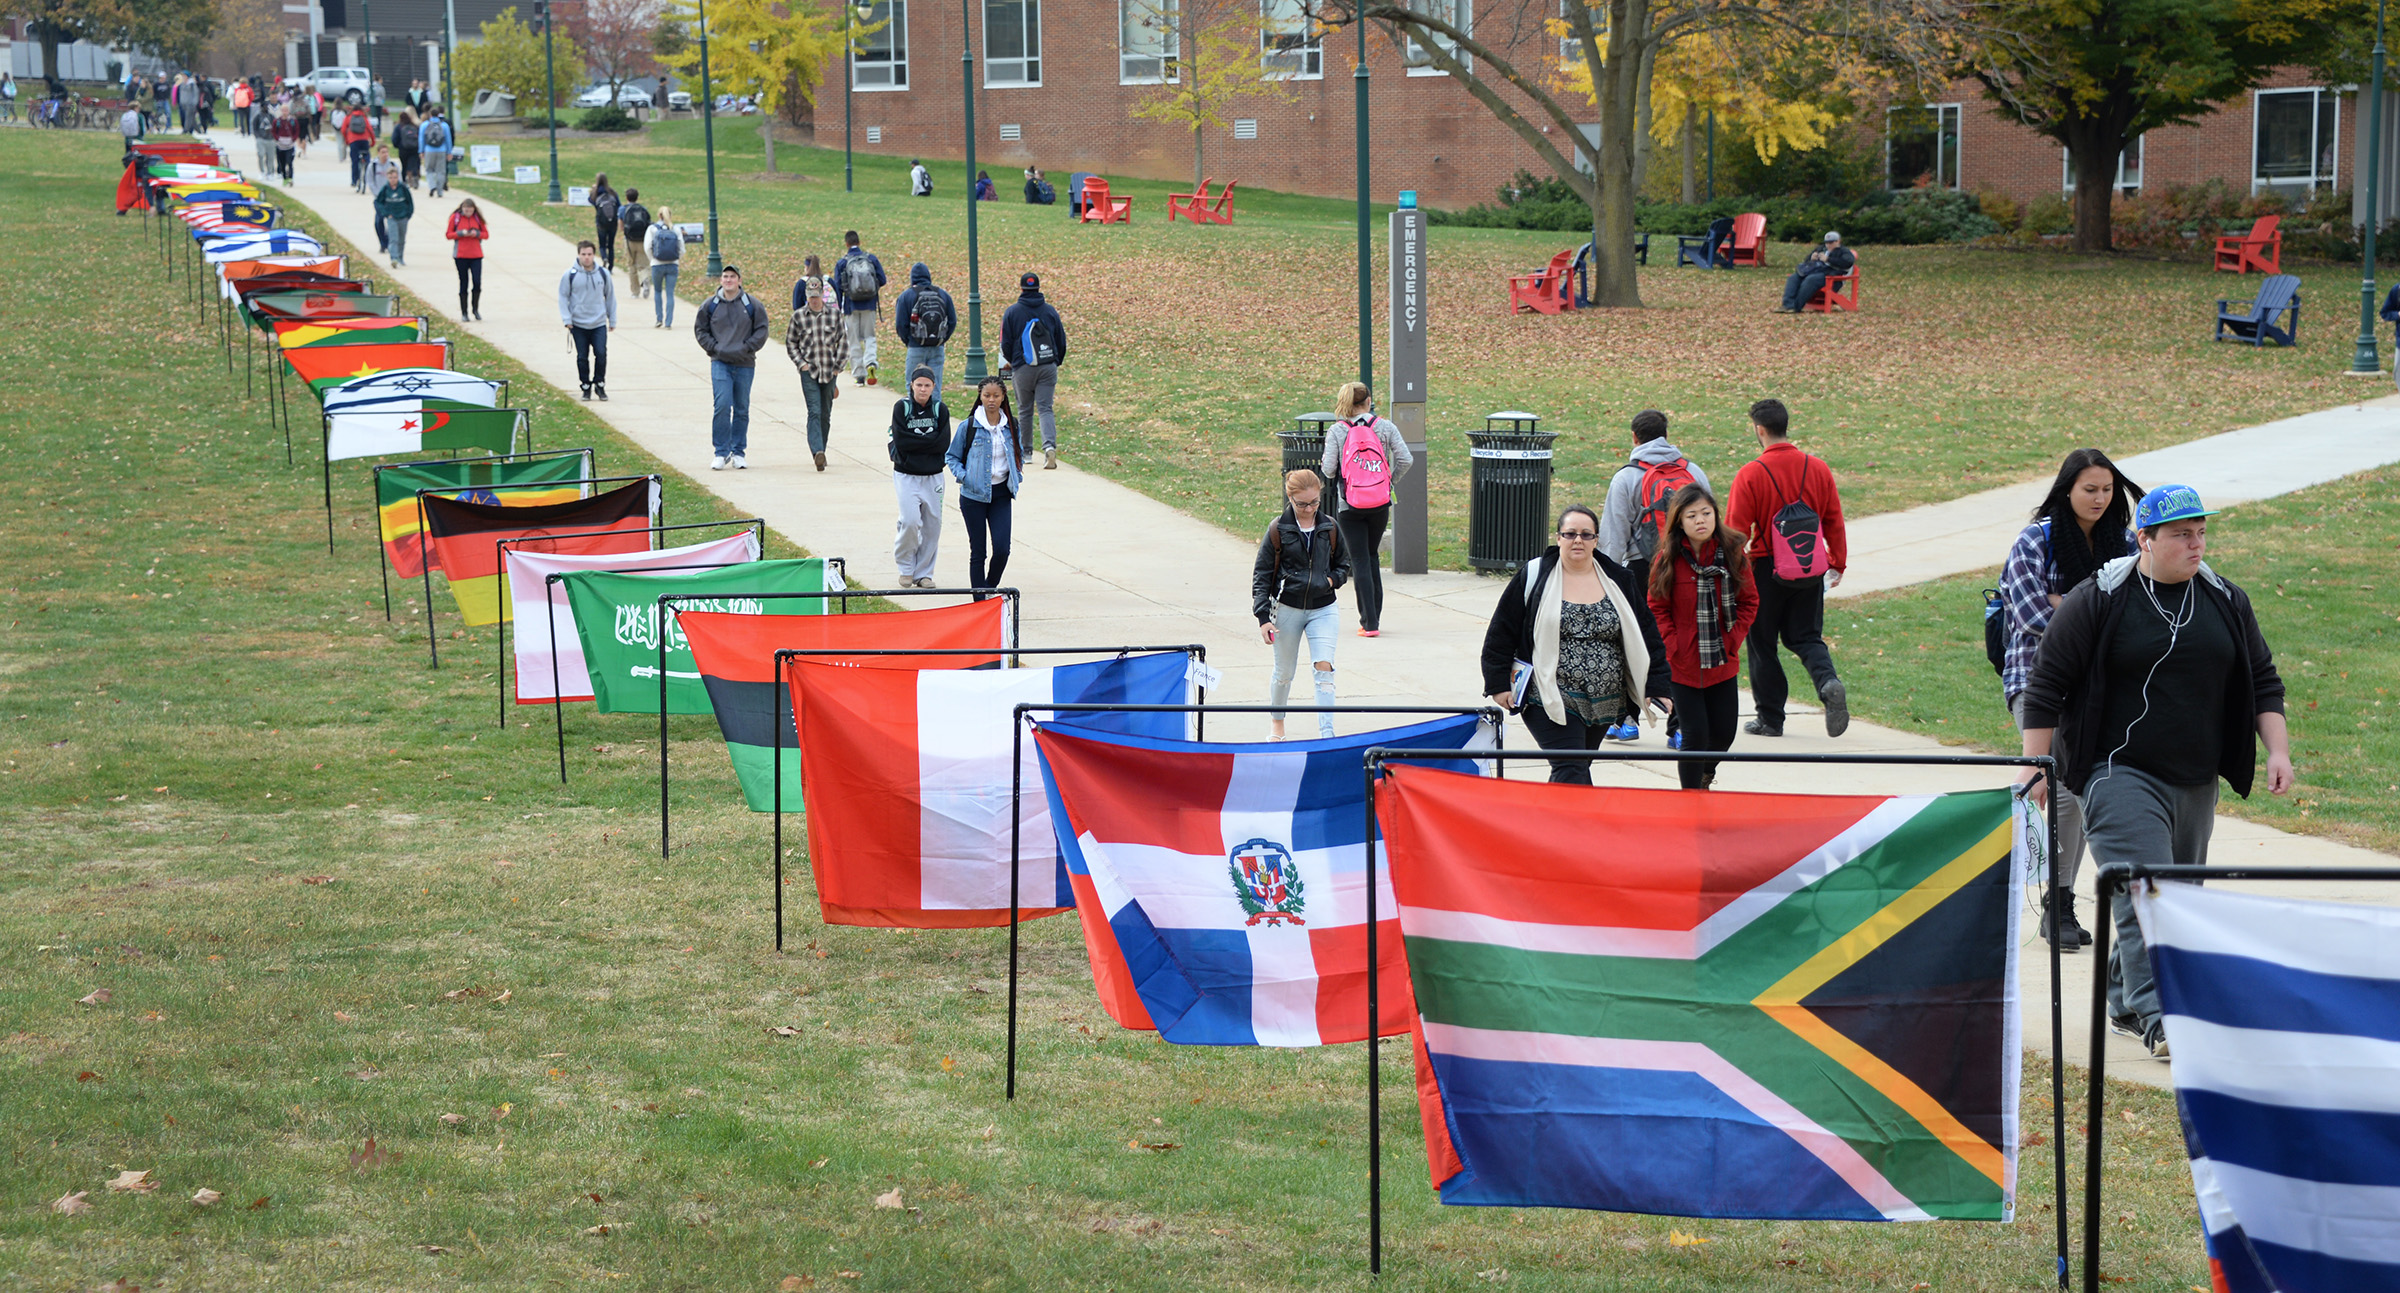 During International Students Week, Ship displayed flags on the quad to represent the different countries of our international students, faculty, and staff.